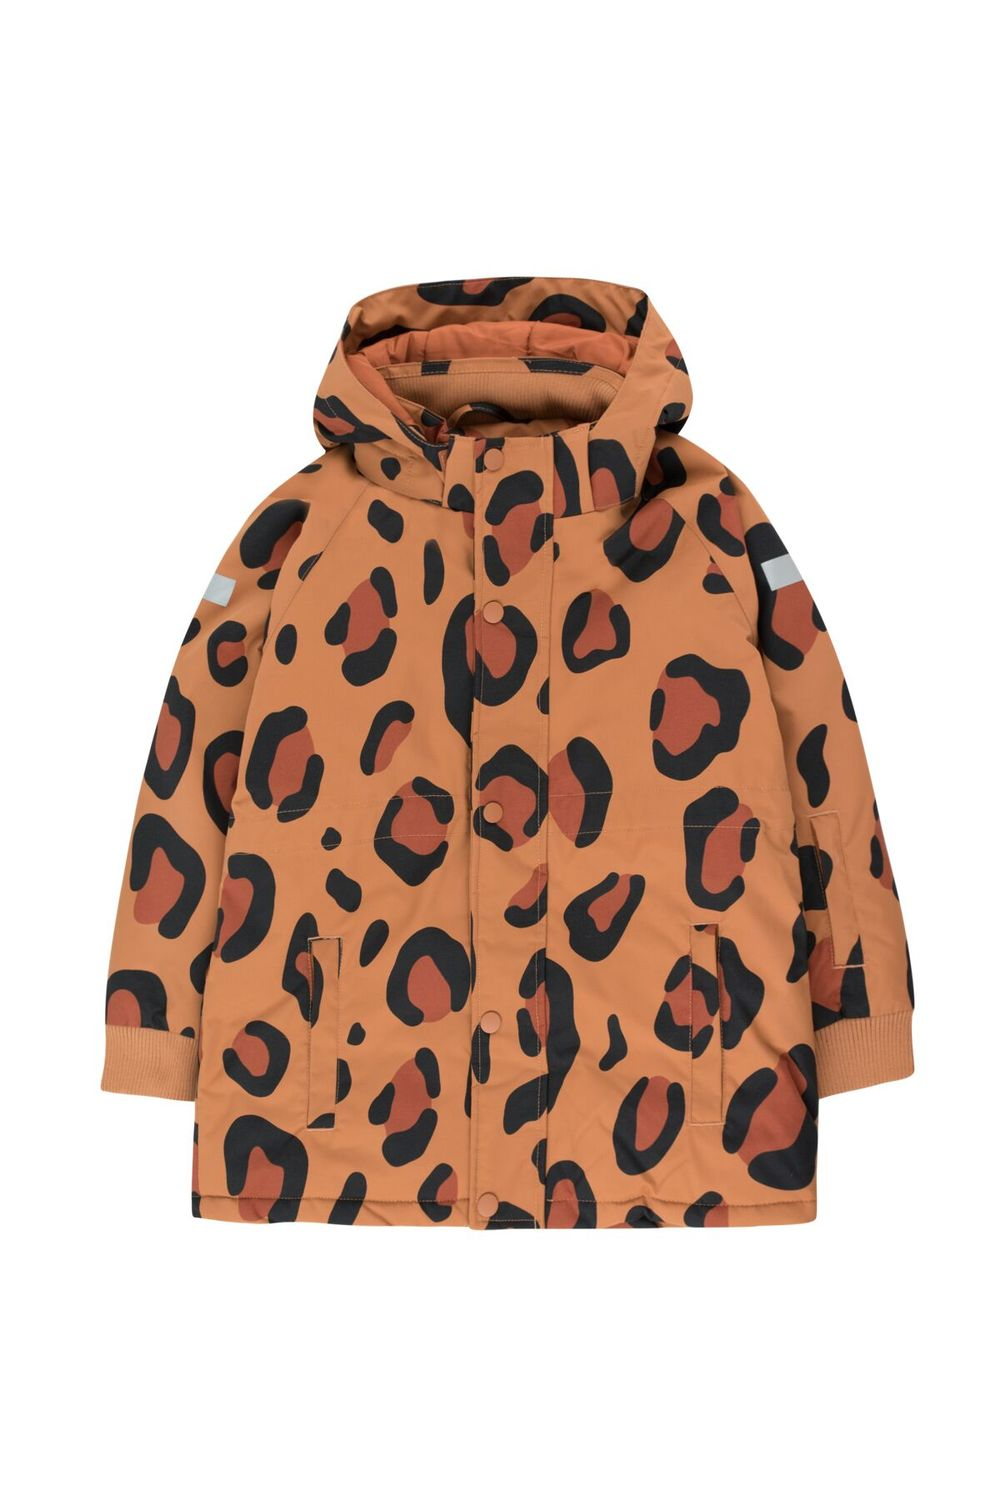 TINY COTTONS ANIMAL PRINT SNOW JKT, BROW